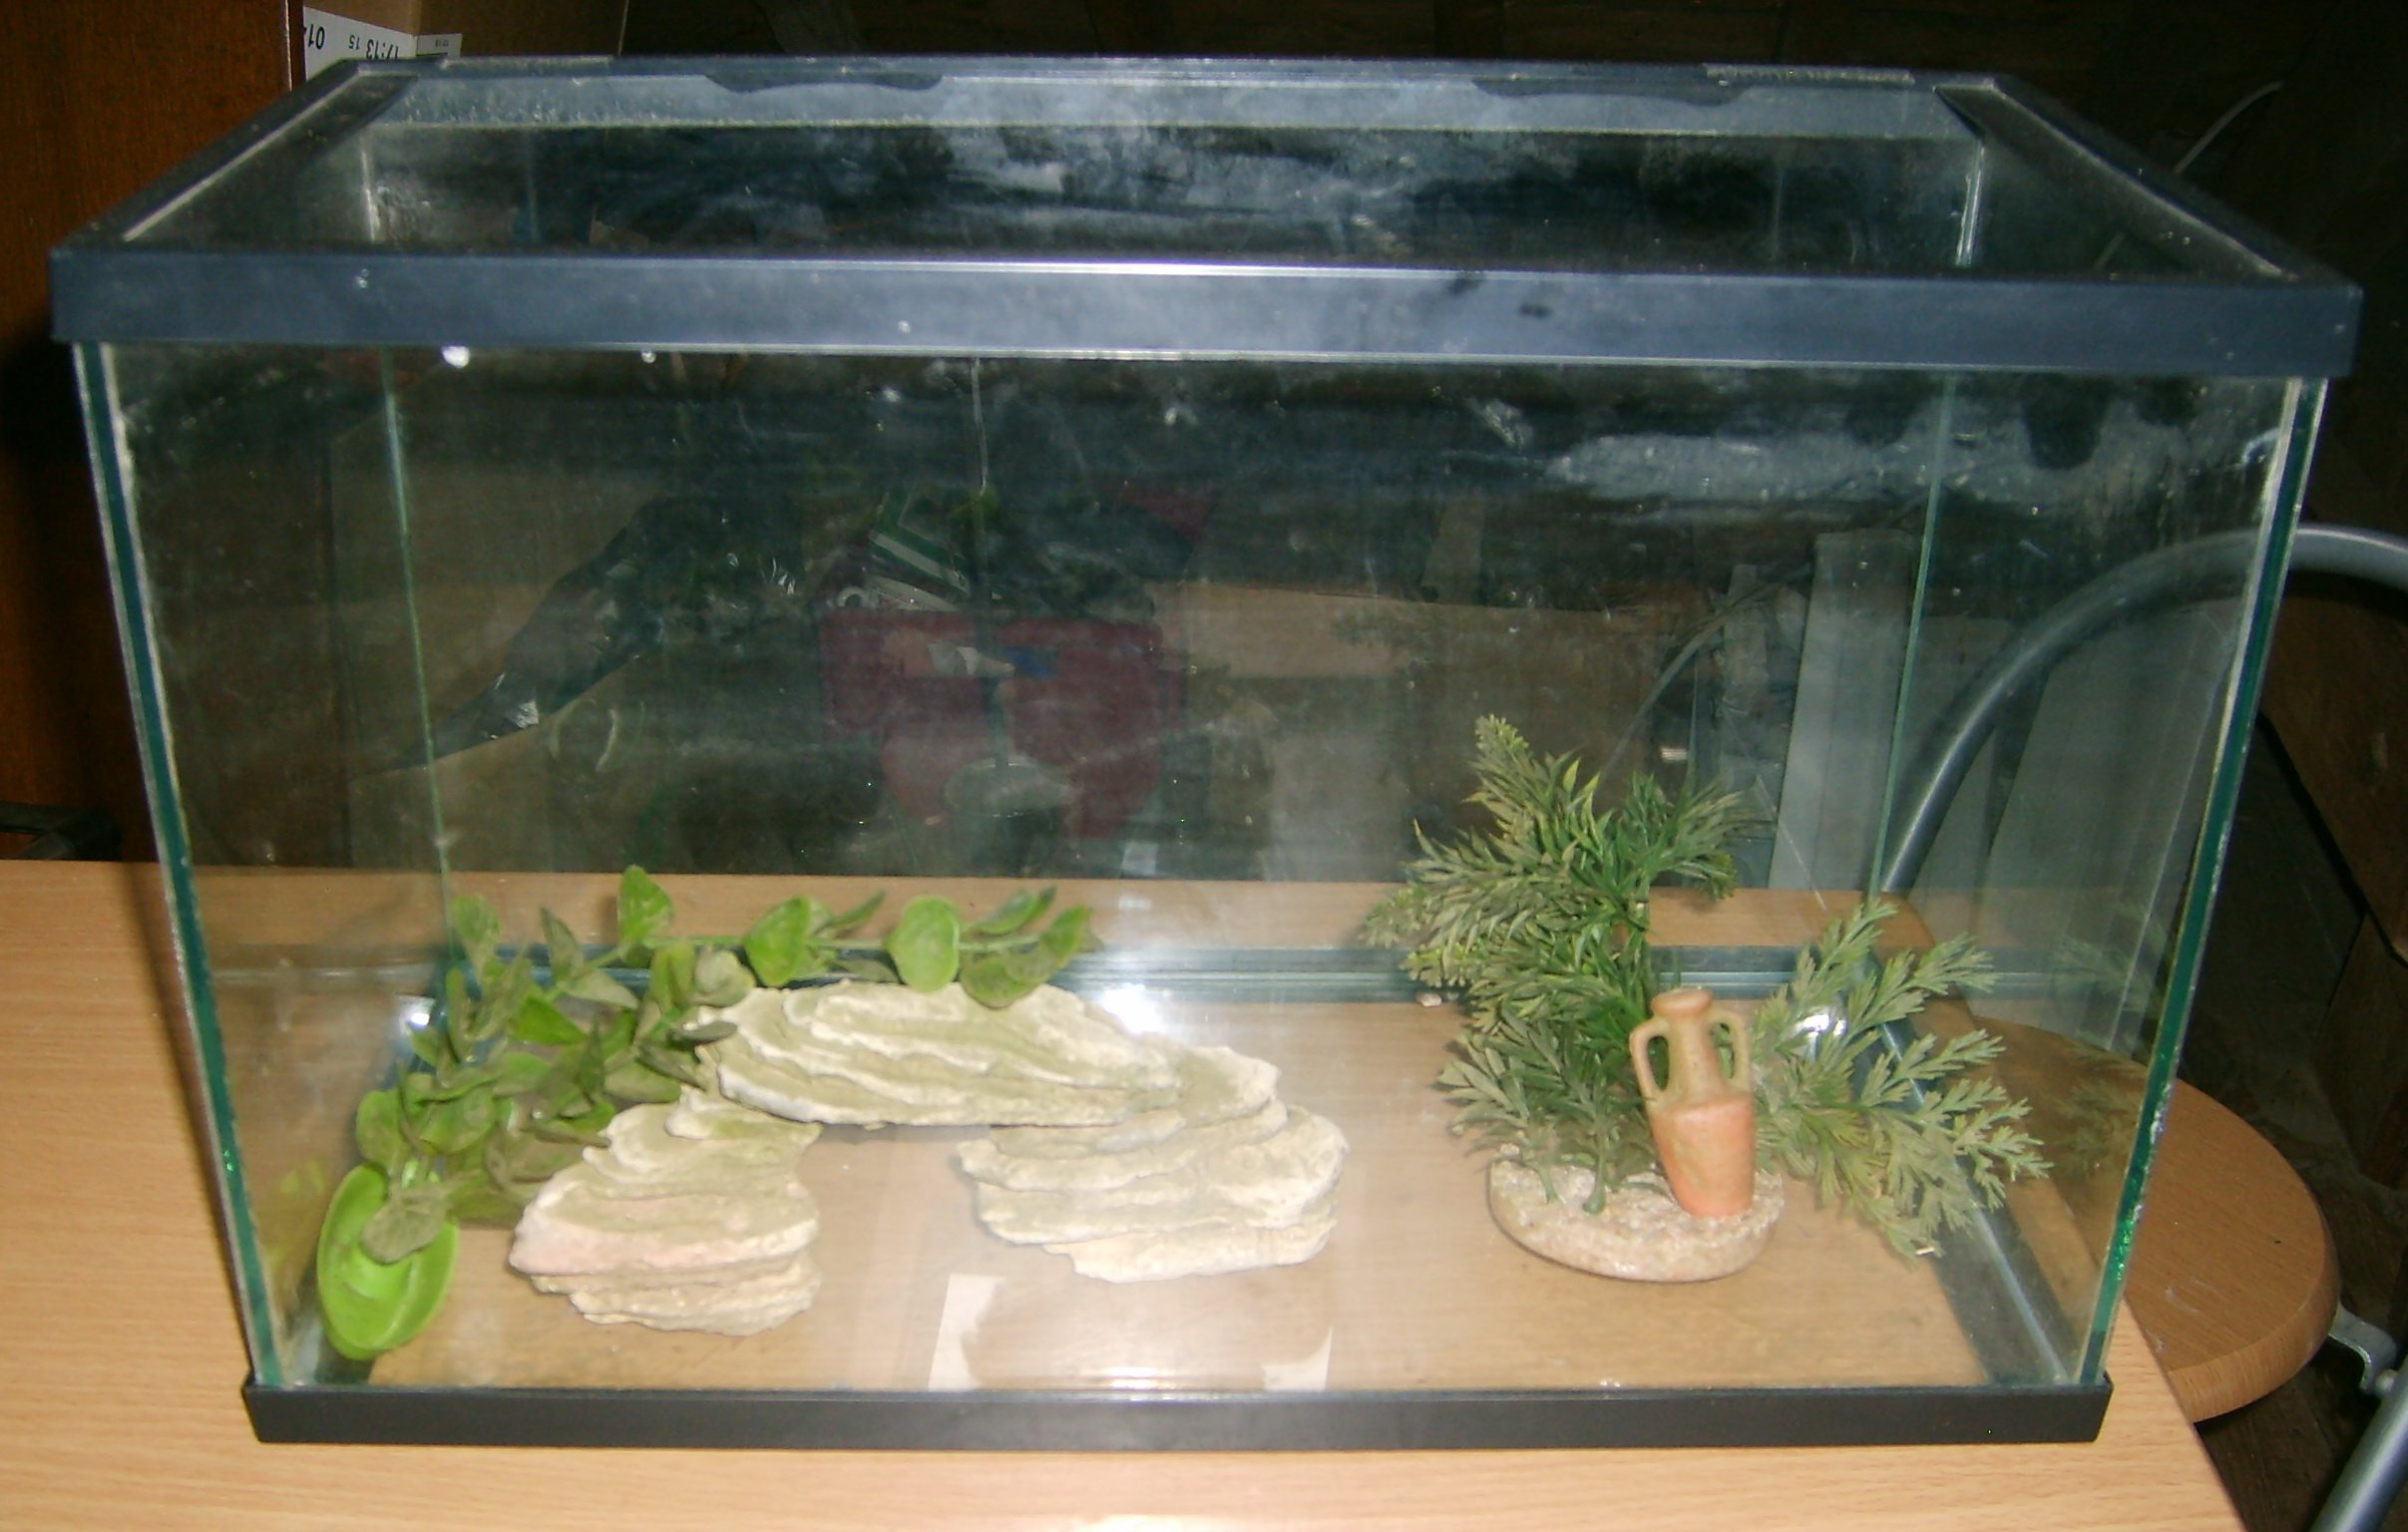 Vente aquarium poisson rouge for Vente poisson aquarium particulier